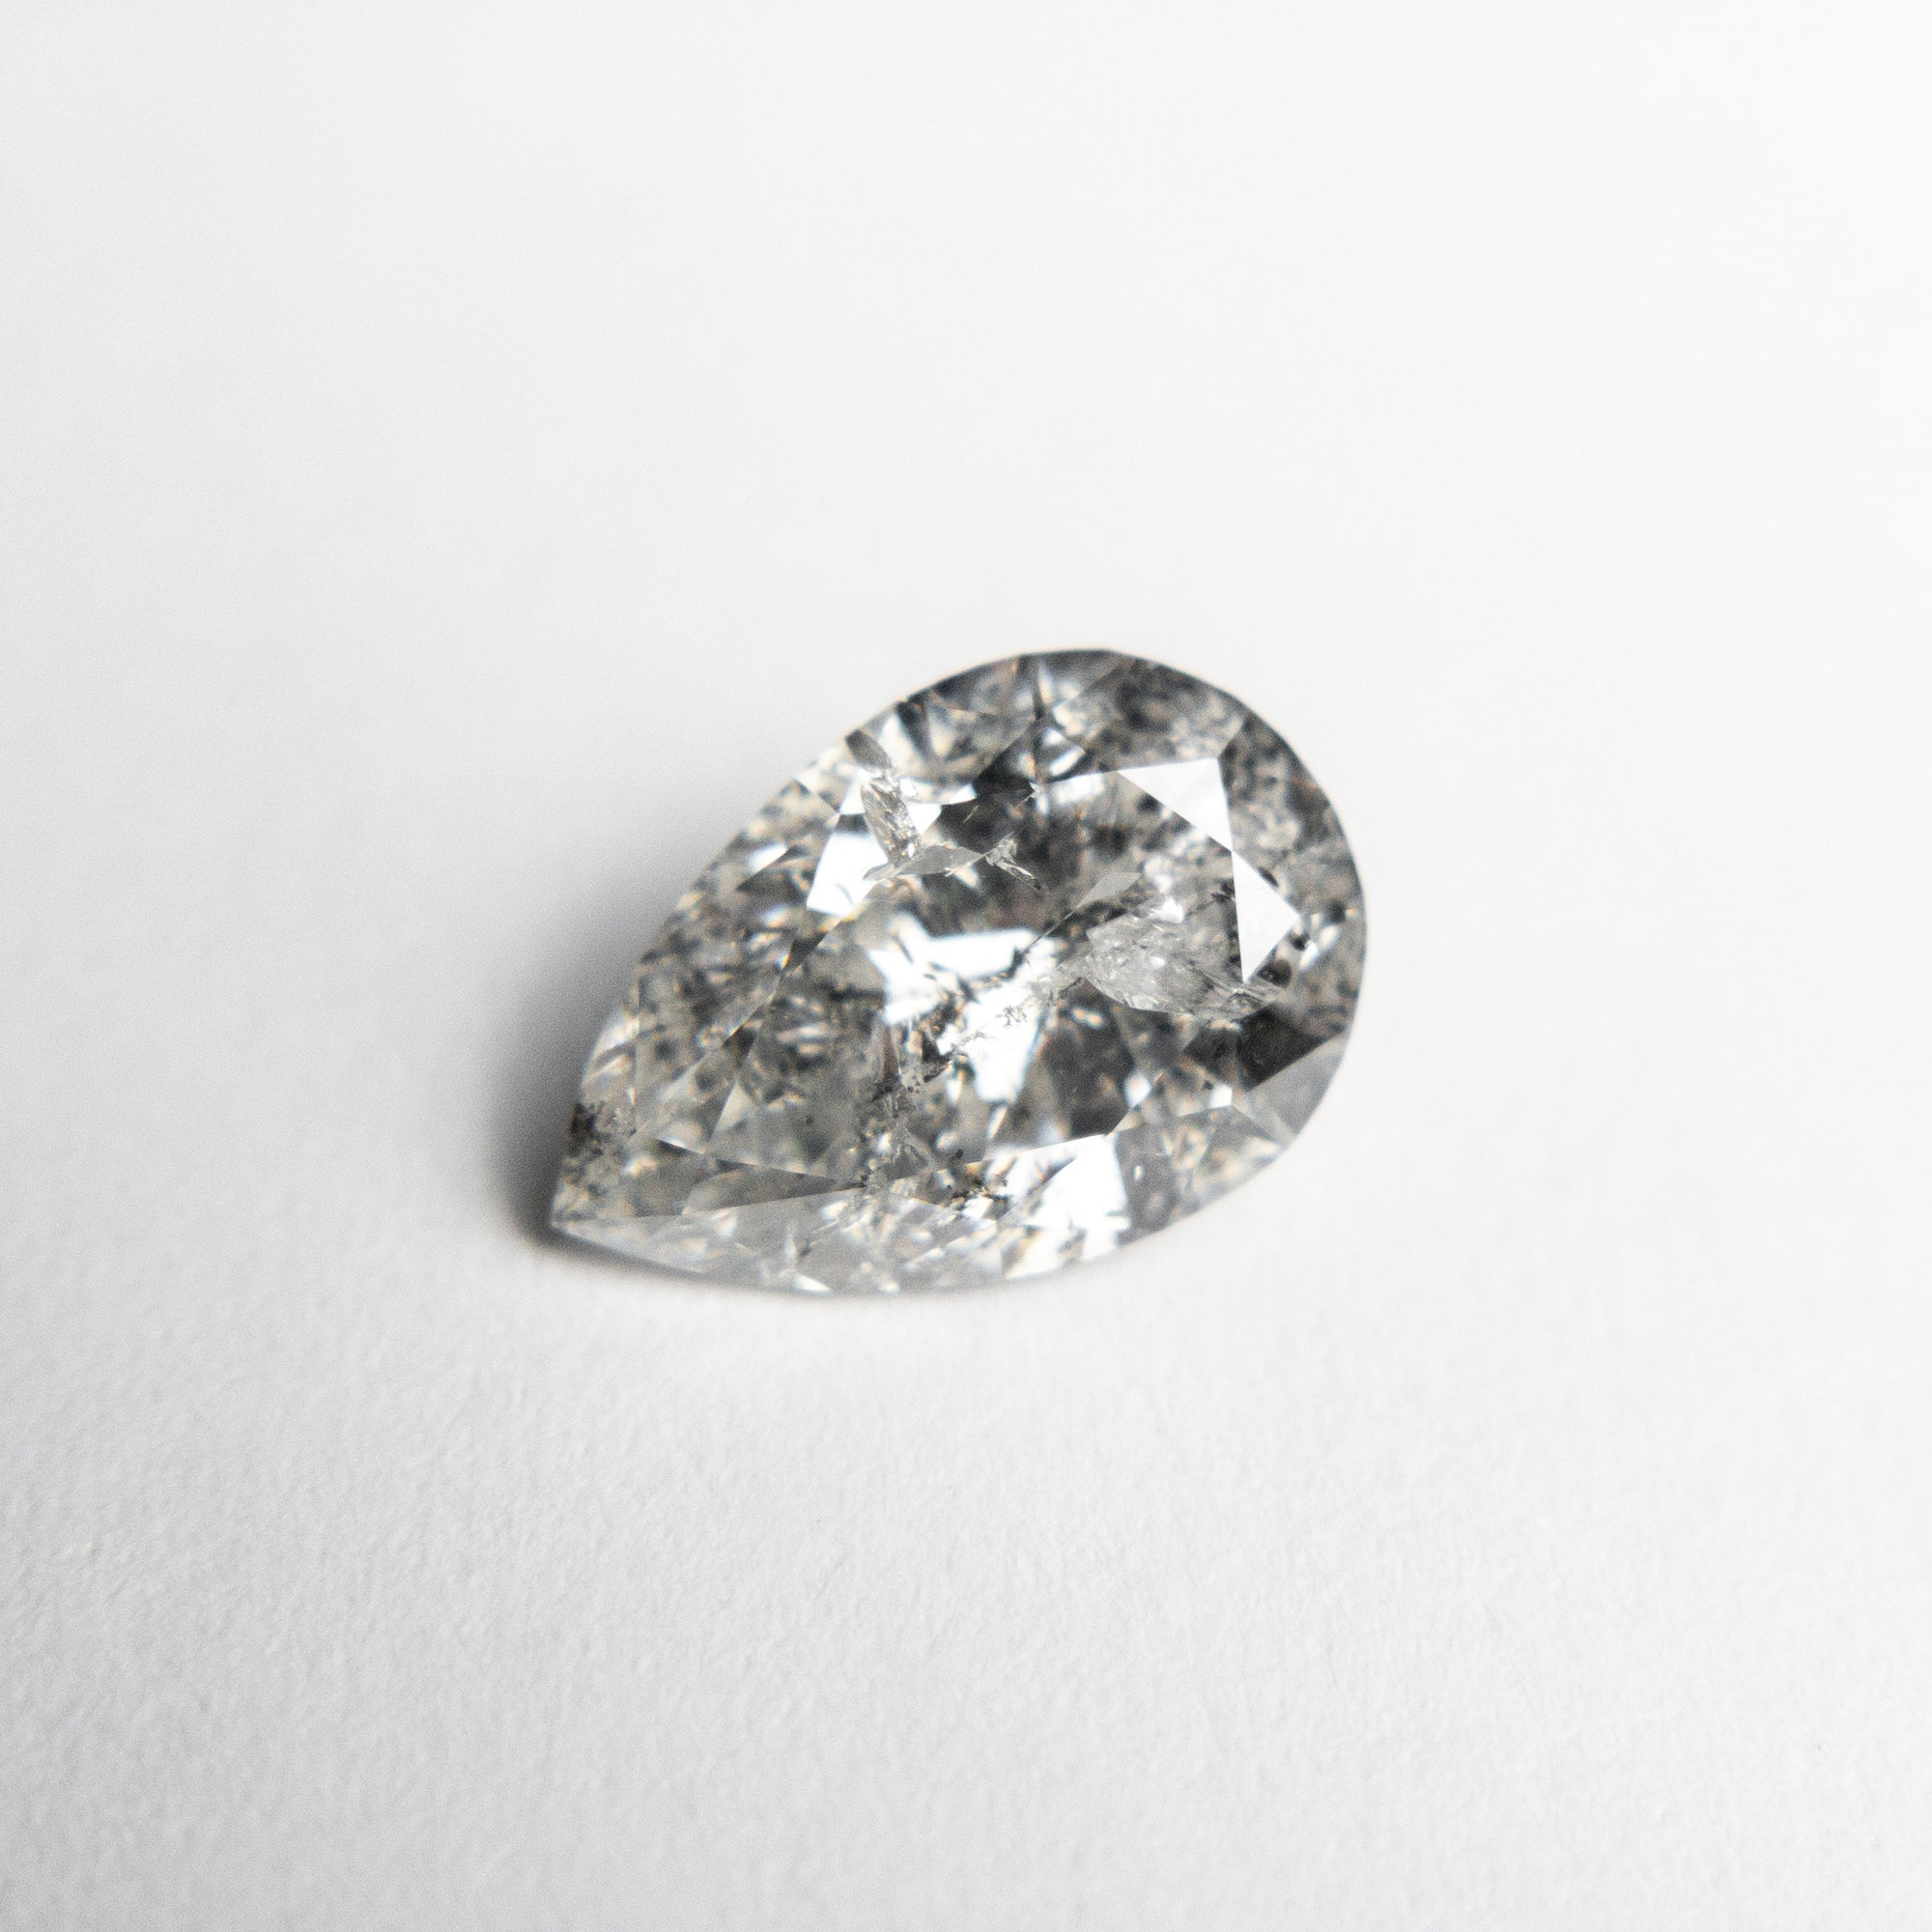 1.09ct 8.60x5.75x3.64mm Pear Brilliant 18490-04